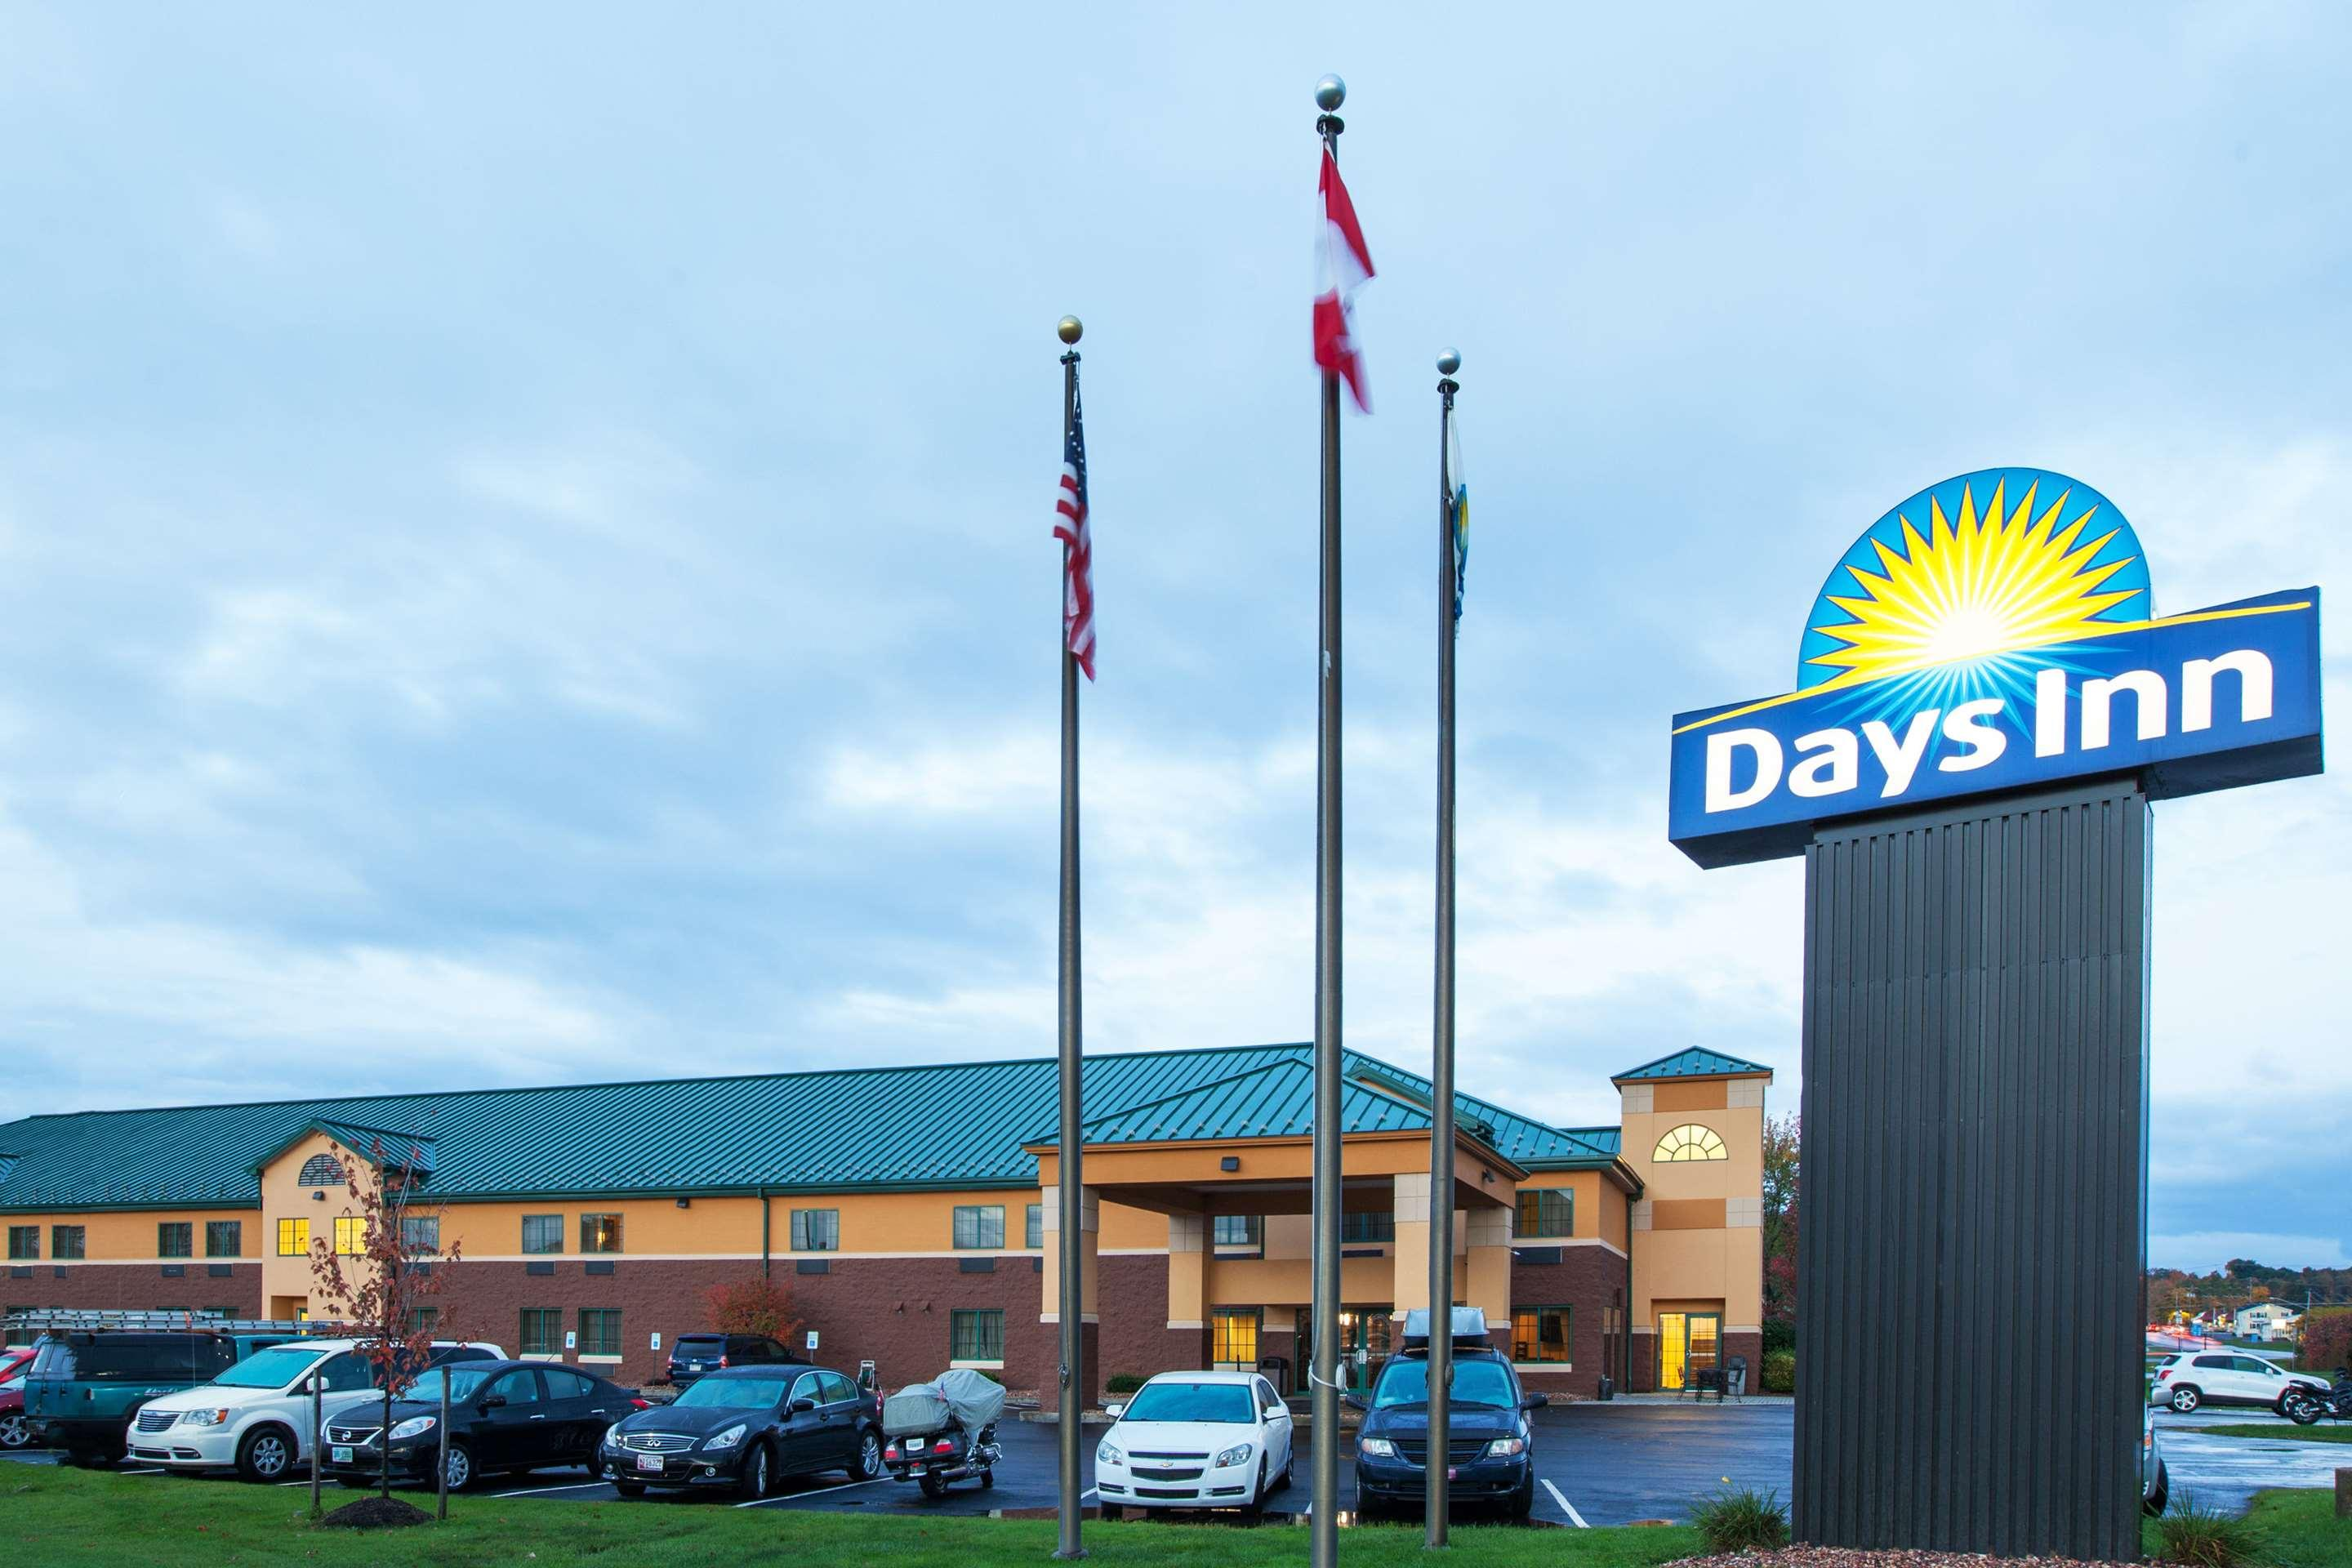 Days Inn by Wyndham Brewerton/ Syracuse near Oneida Lake